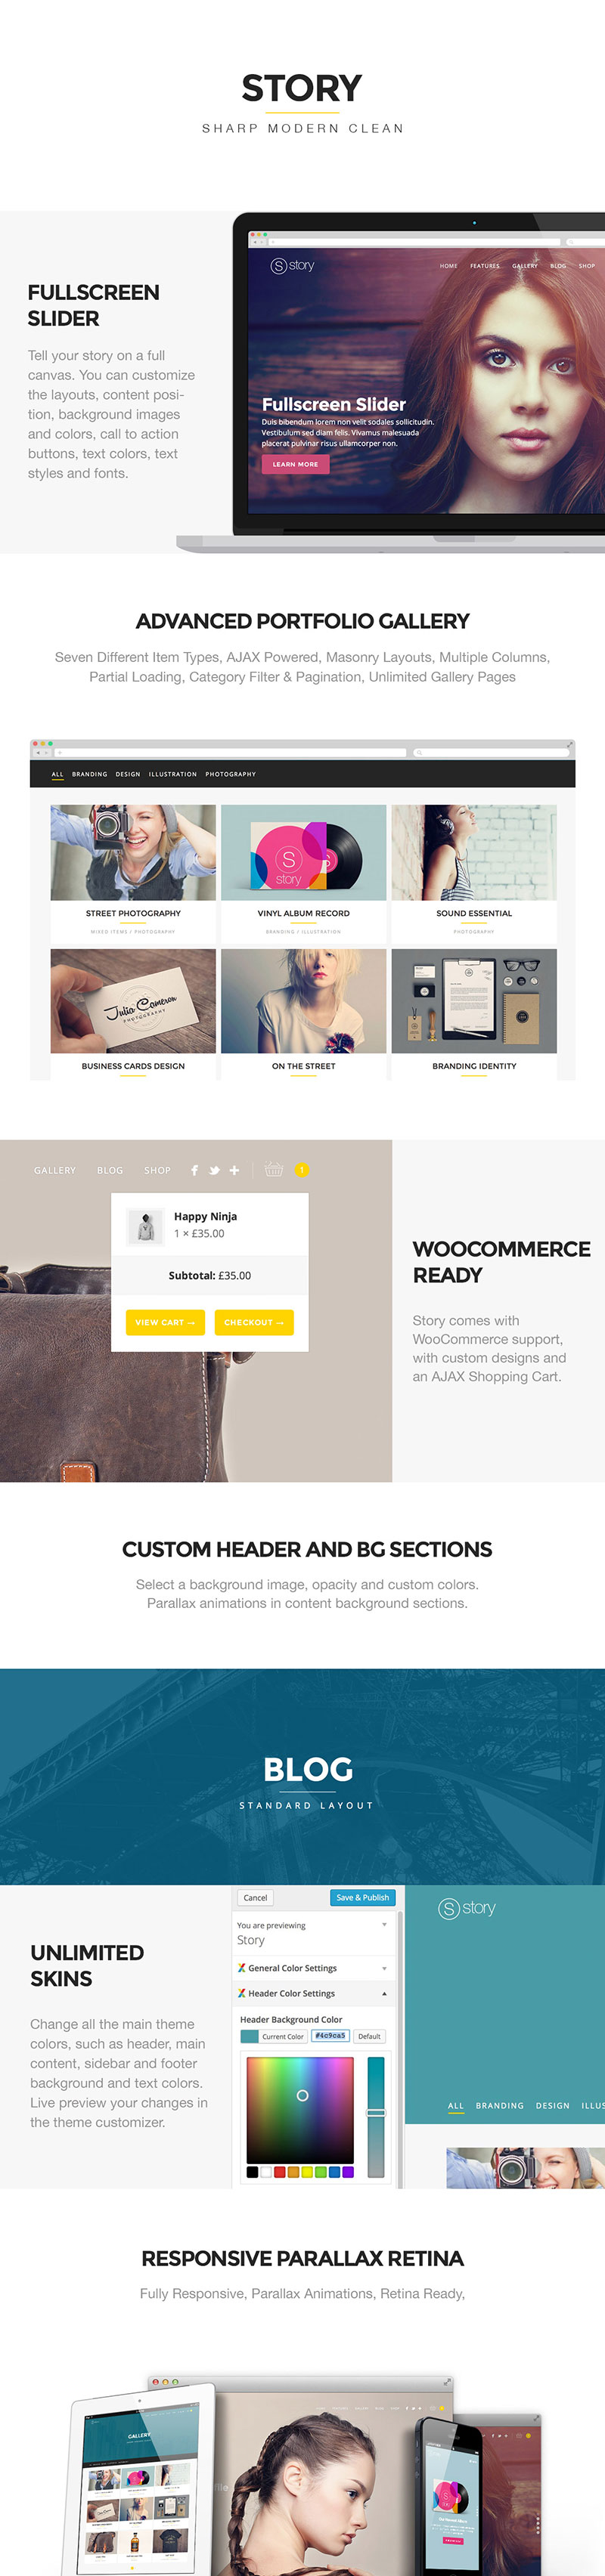 Story - Creative Responsive Multi-Purpose Theme - 1